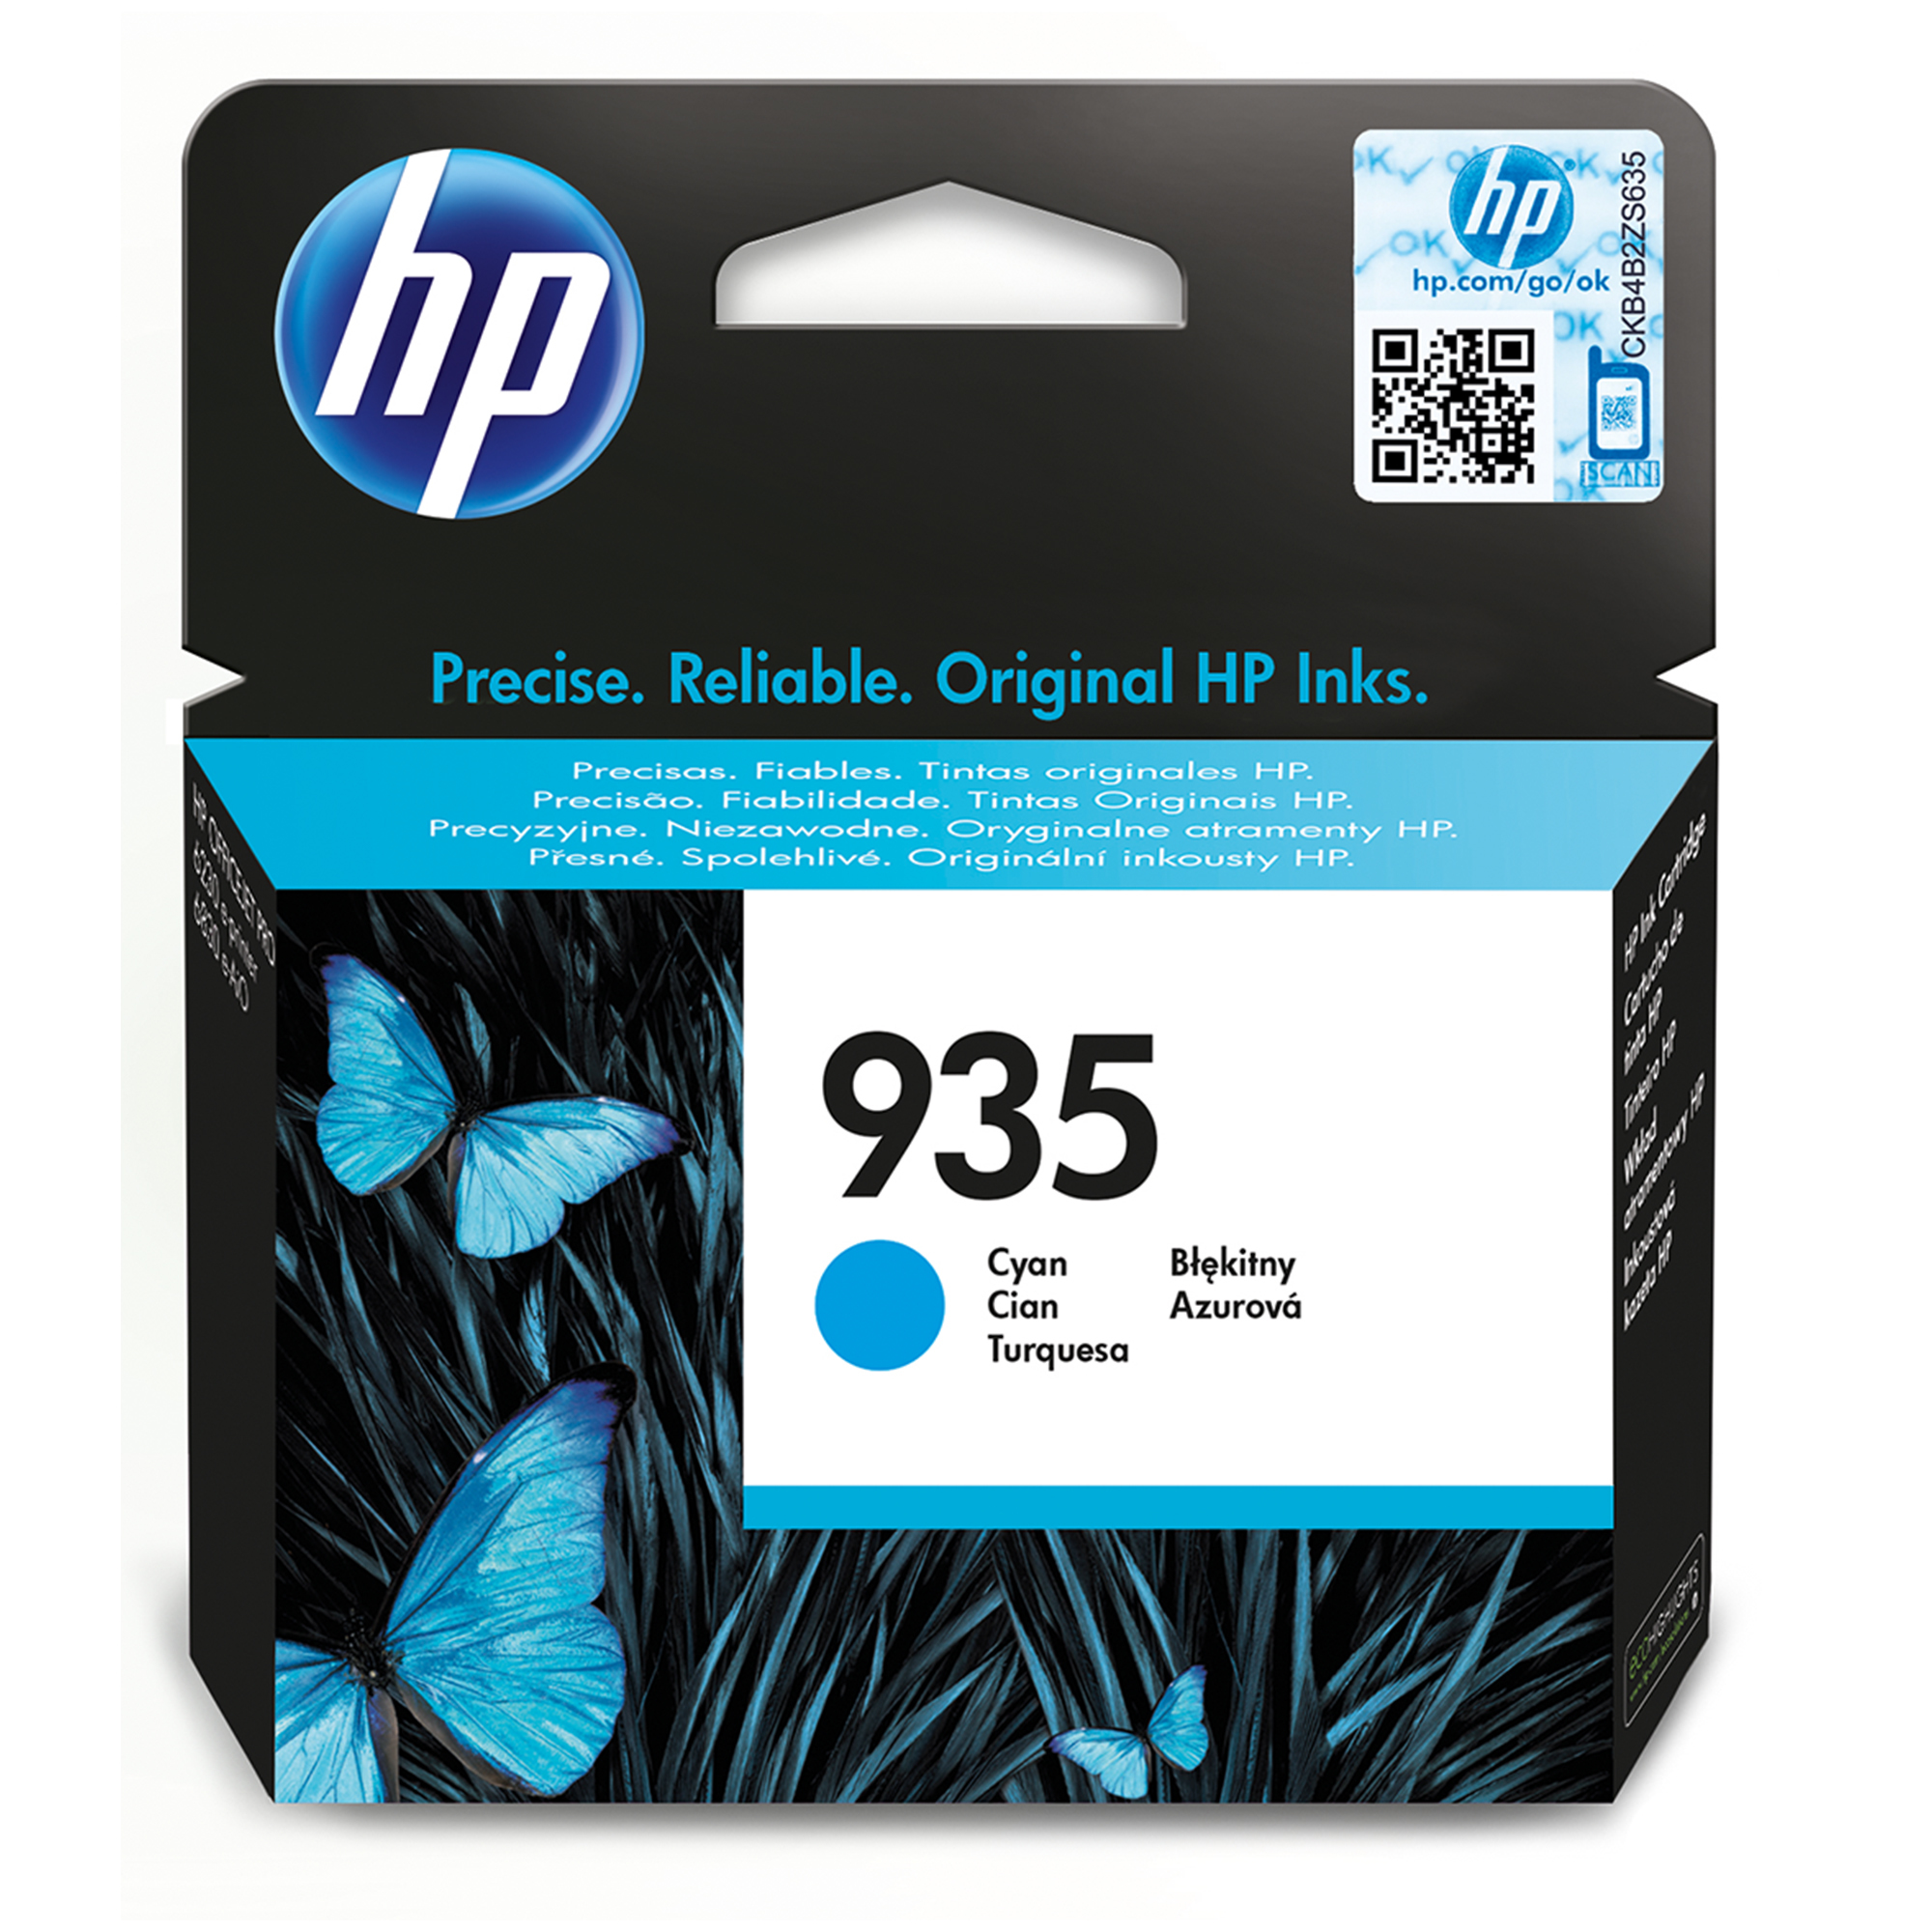 HP Hp 935 Cyan Ink Cartridge C2p20ae - AD01